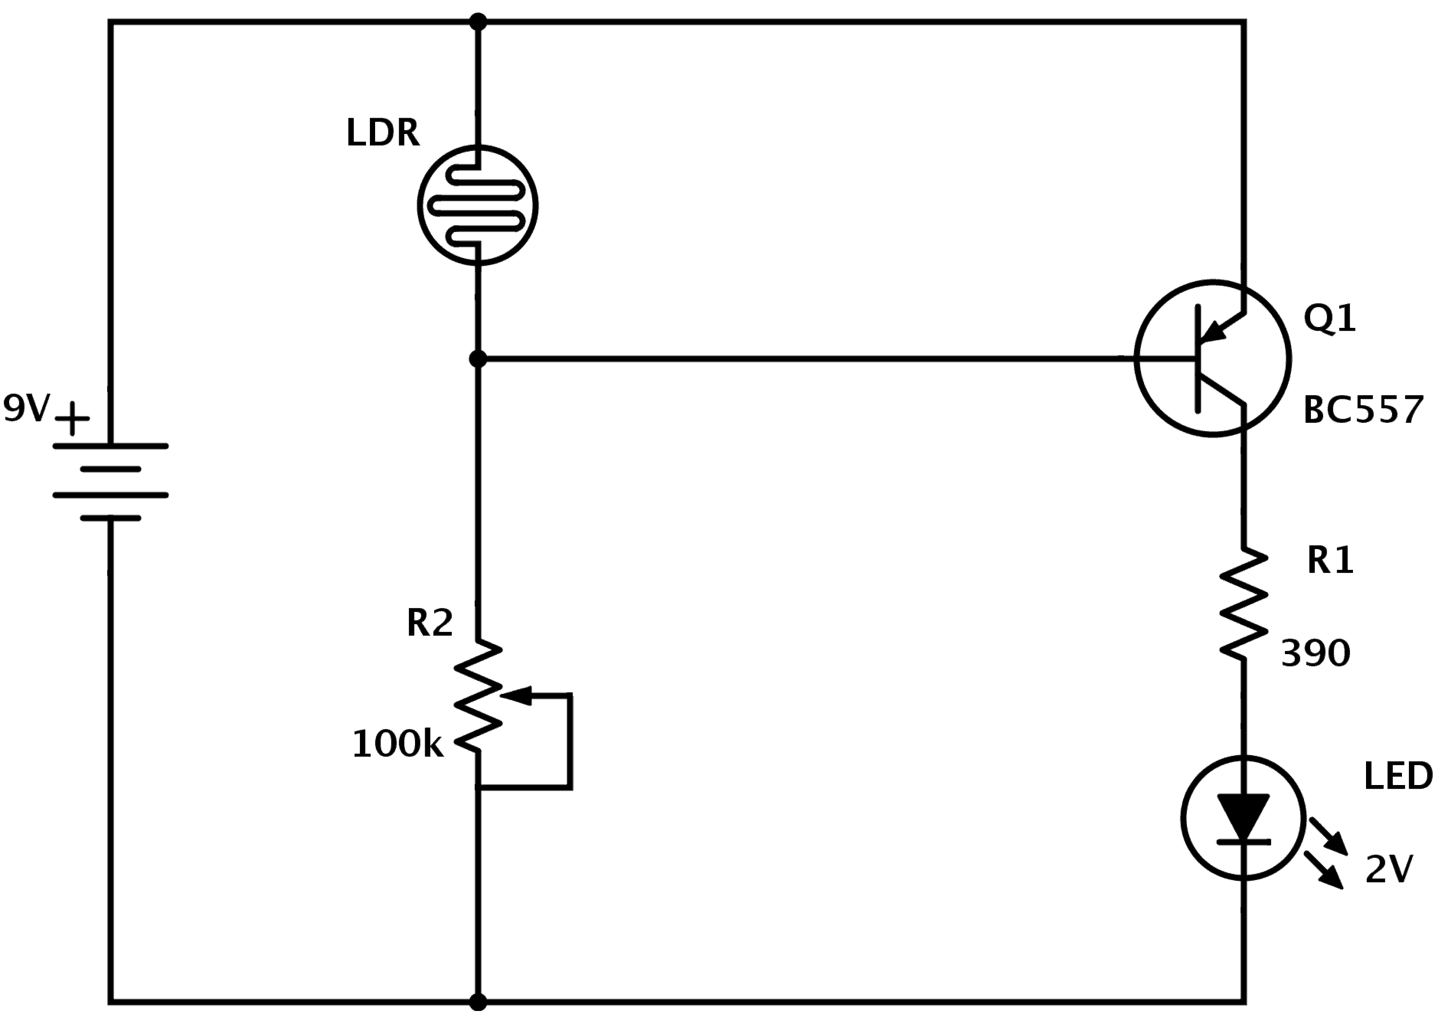 Circuit Diagram Of Ldr Free Wiring For You Electronics Projects Build Electronic Circuits Rh Com Project